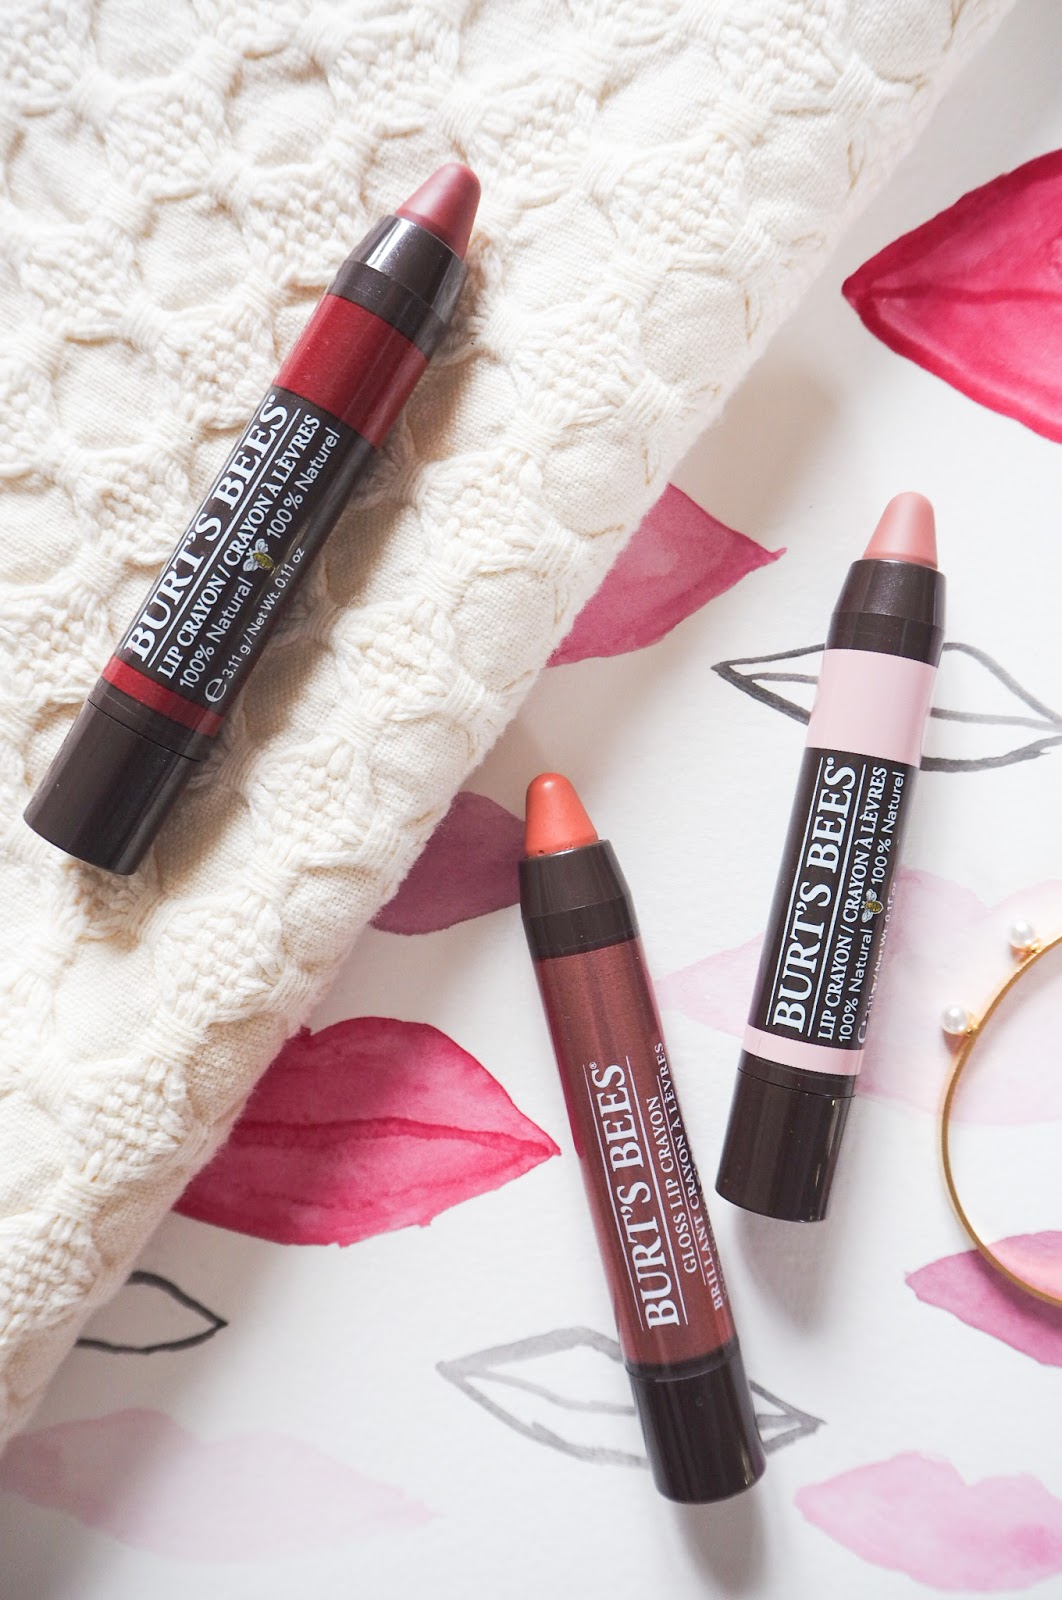 Burts Bees Lip Crayon Review